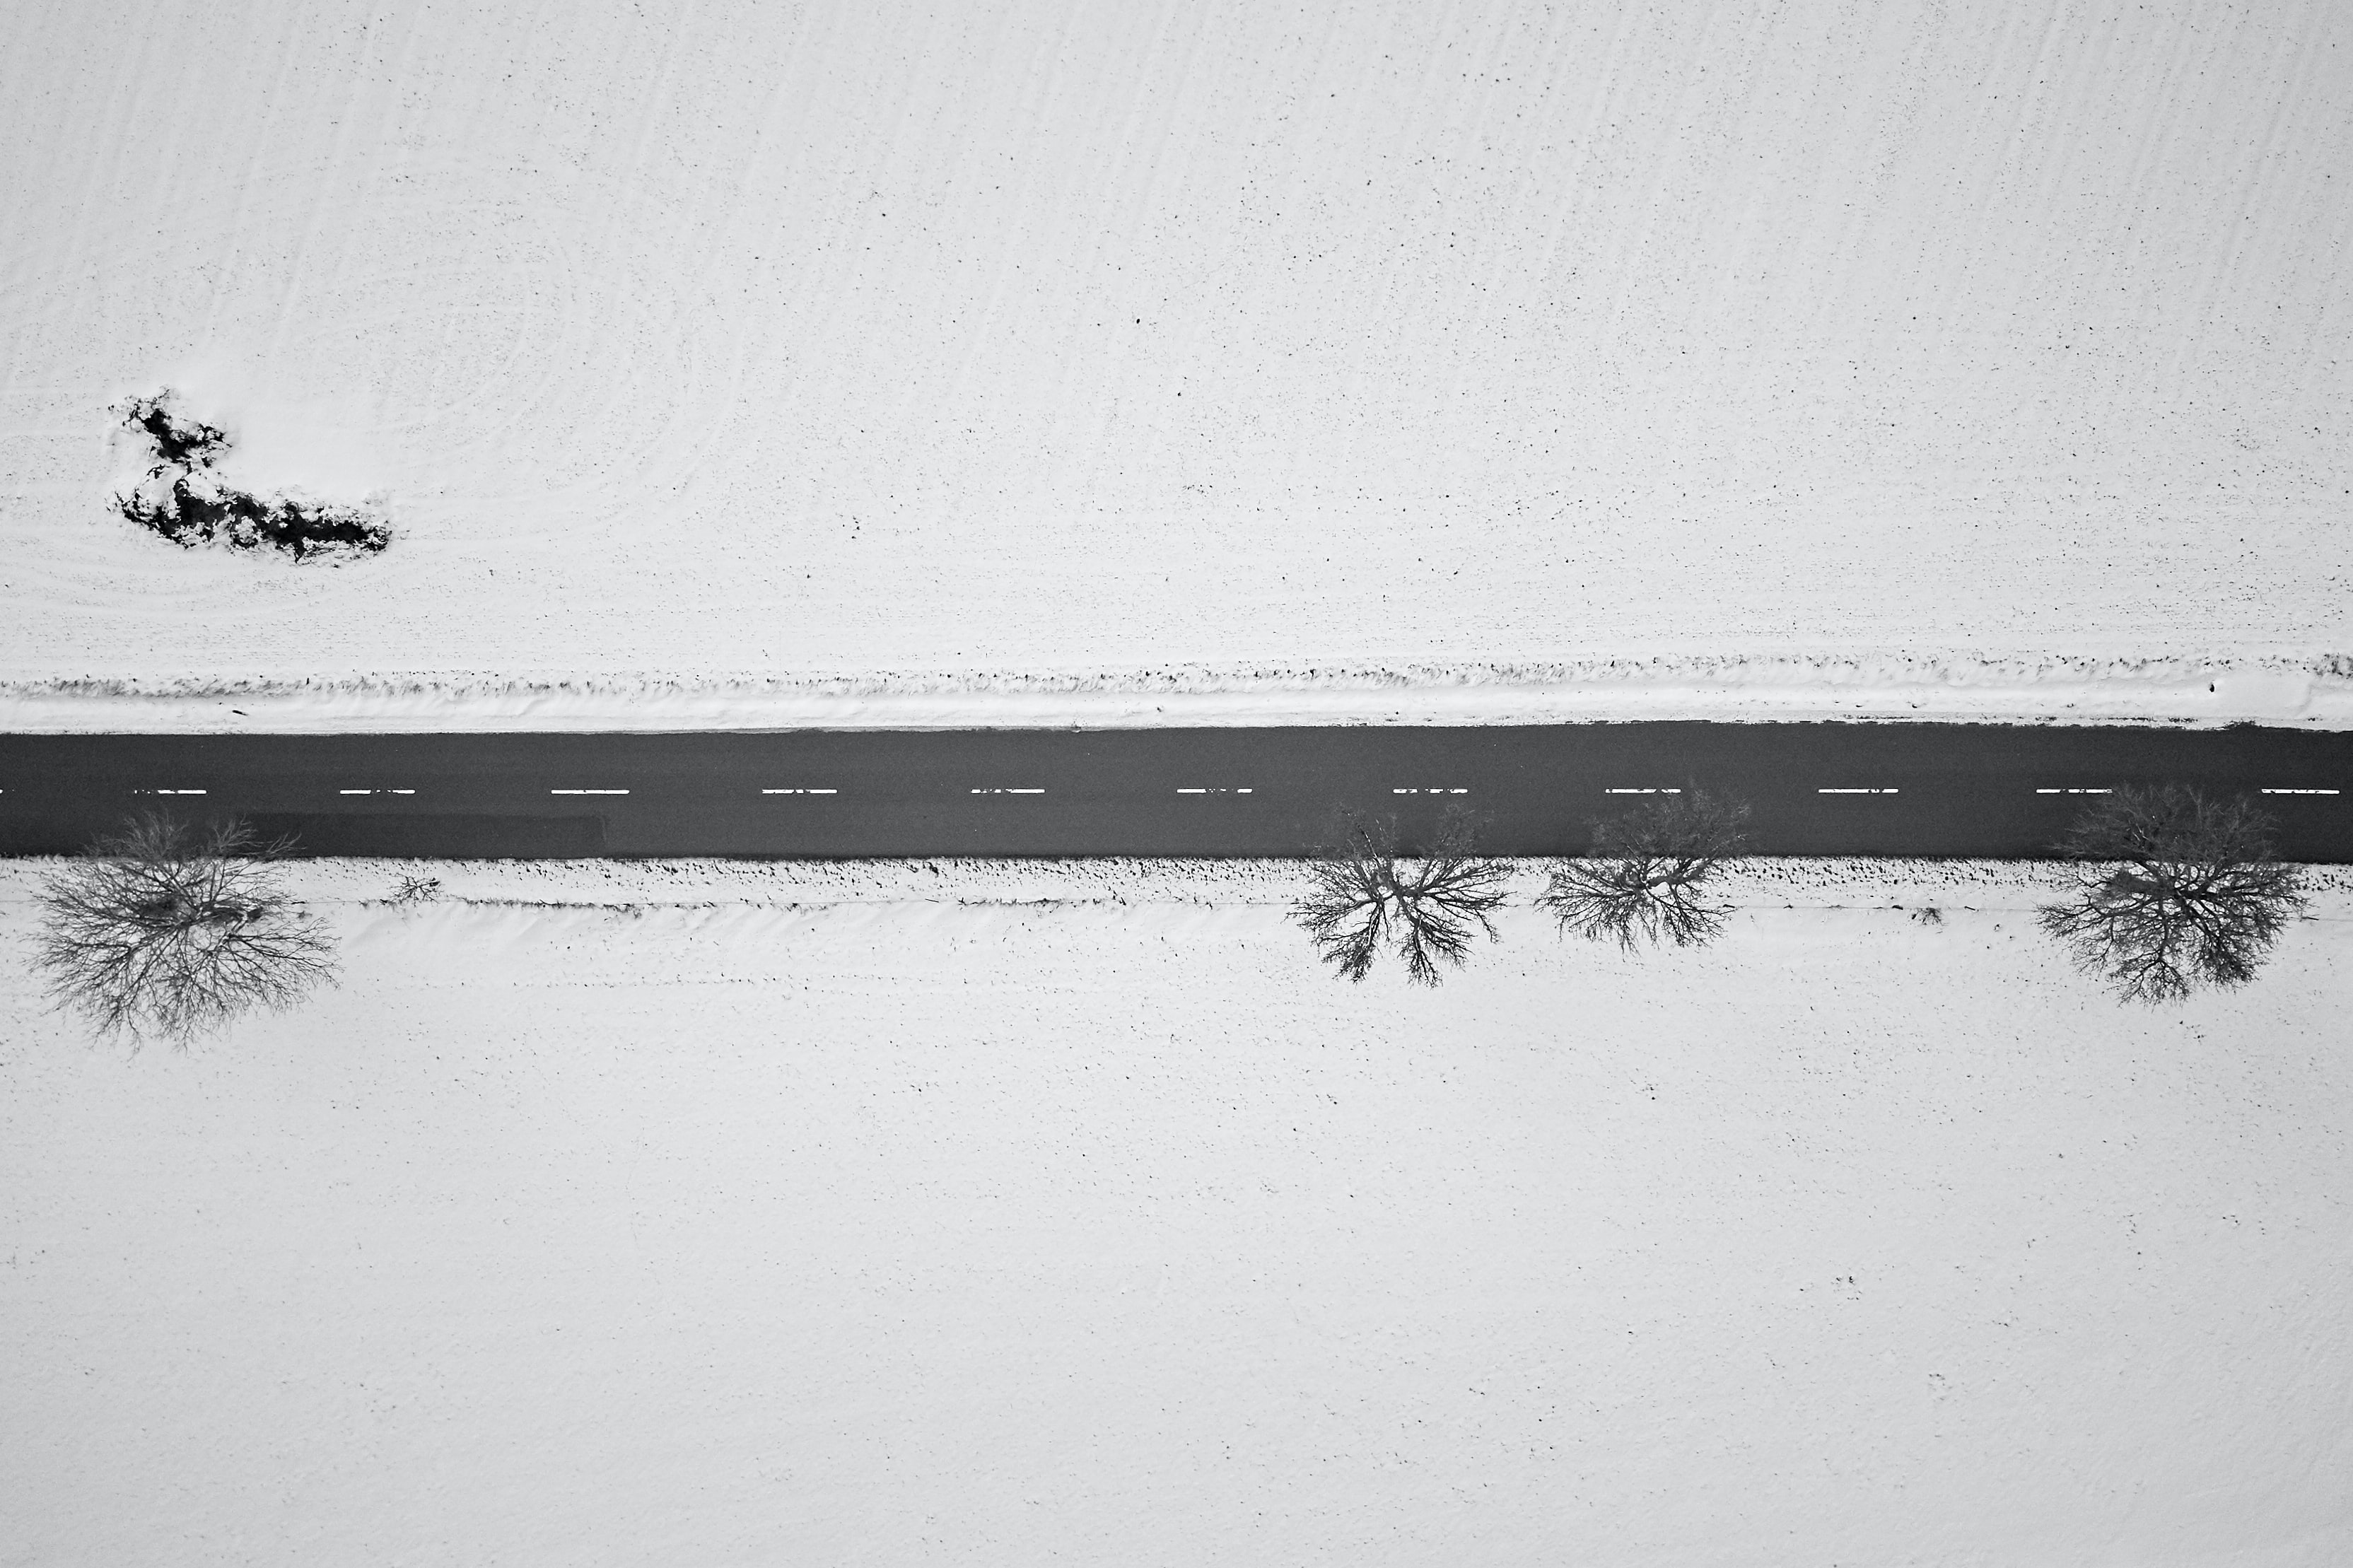 bird's eye view of road in the middle of snow field